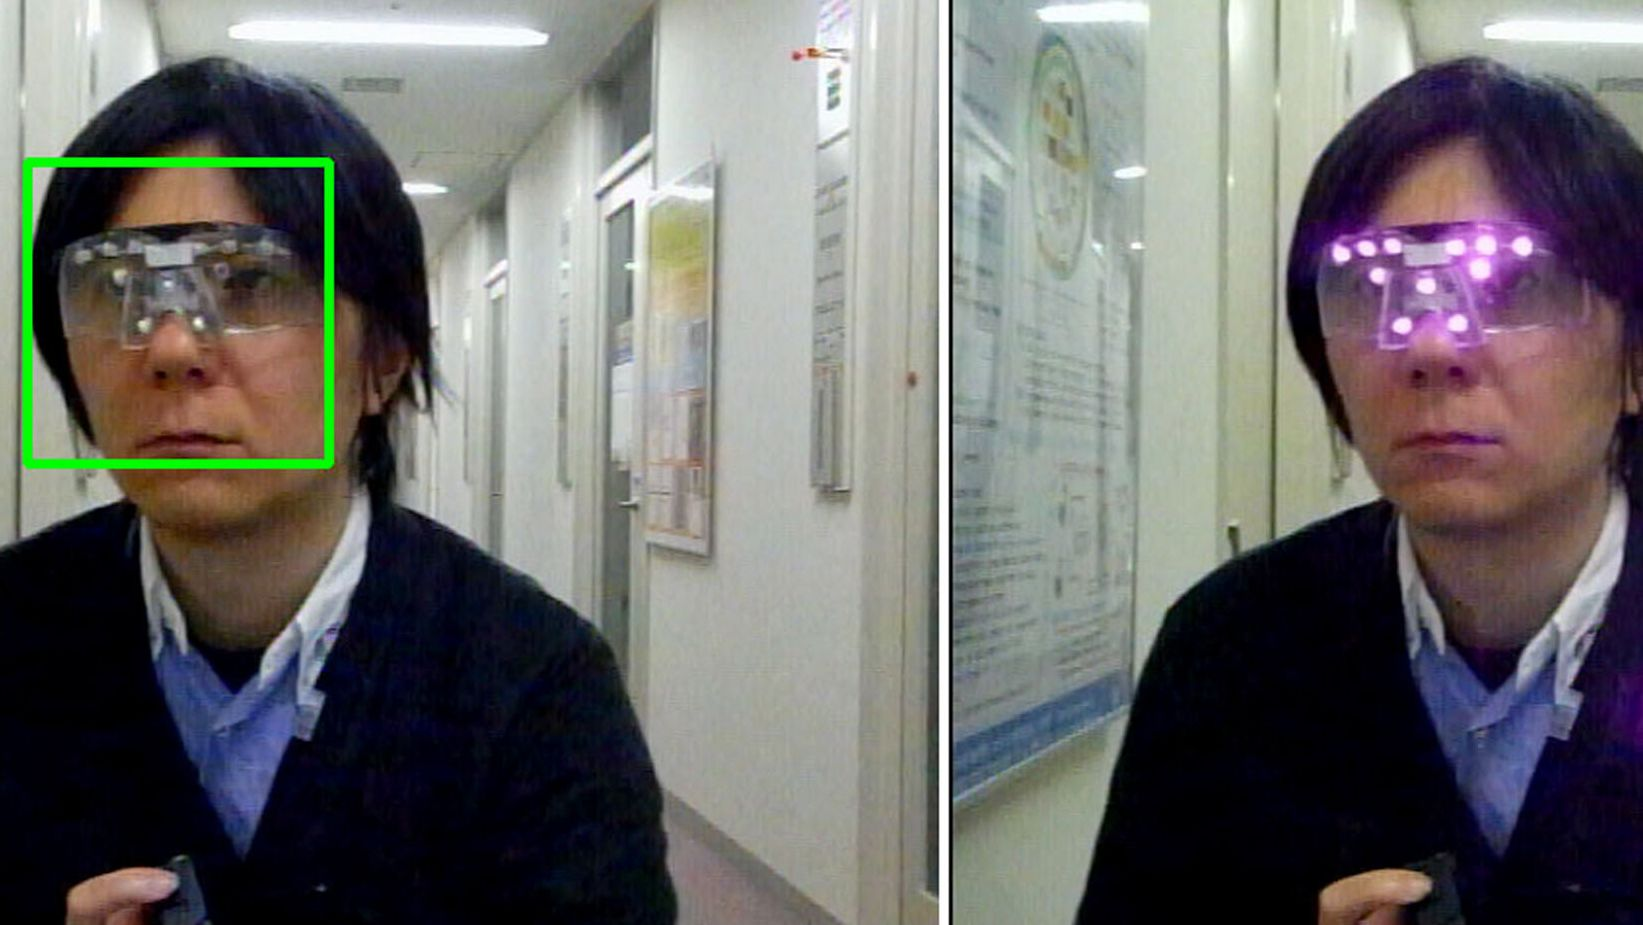 Anonymity: The 'privacy visor' emits near-infrared light (right) to confuse facial recognition cameras.  When it's off (left), his image is captured, as indicated by the square frame surrounding the model's face. | ISAO ECHIZEN / AFP-JIJI